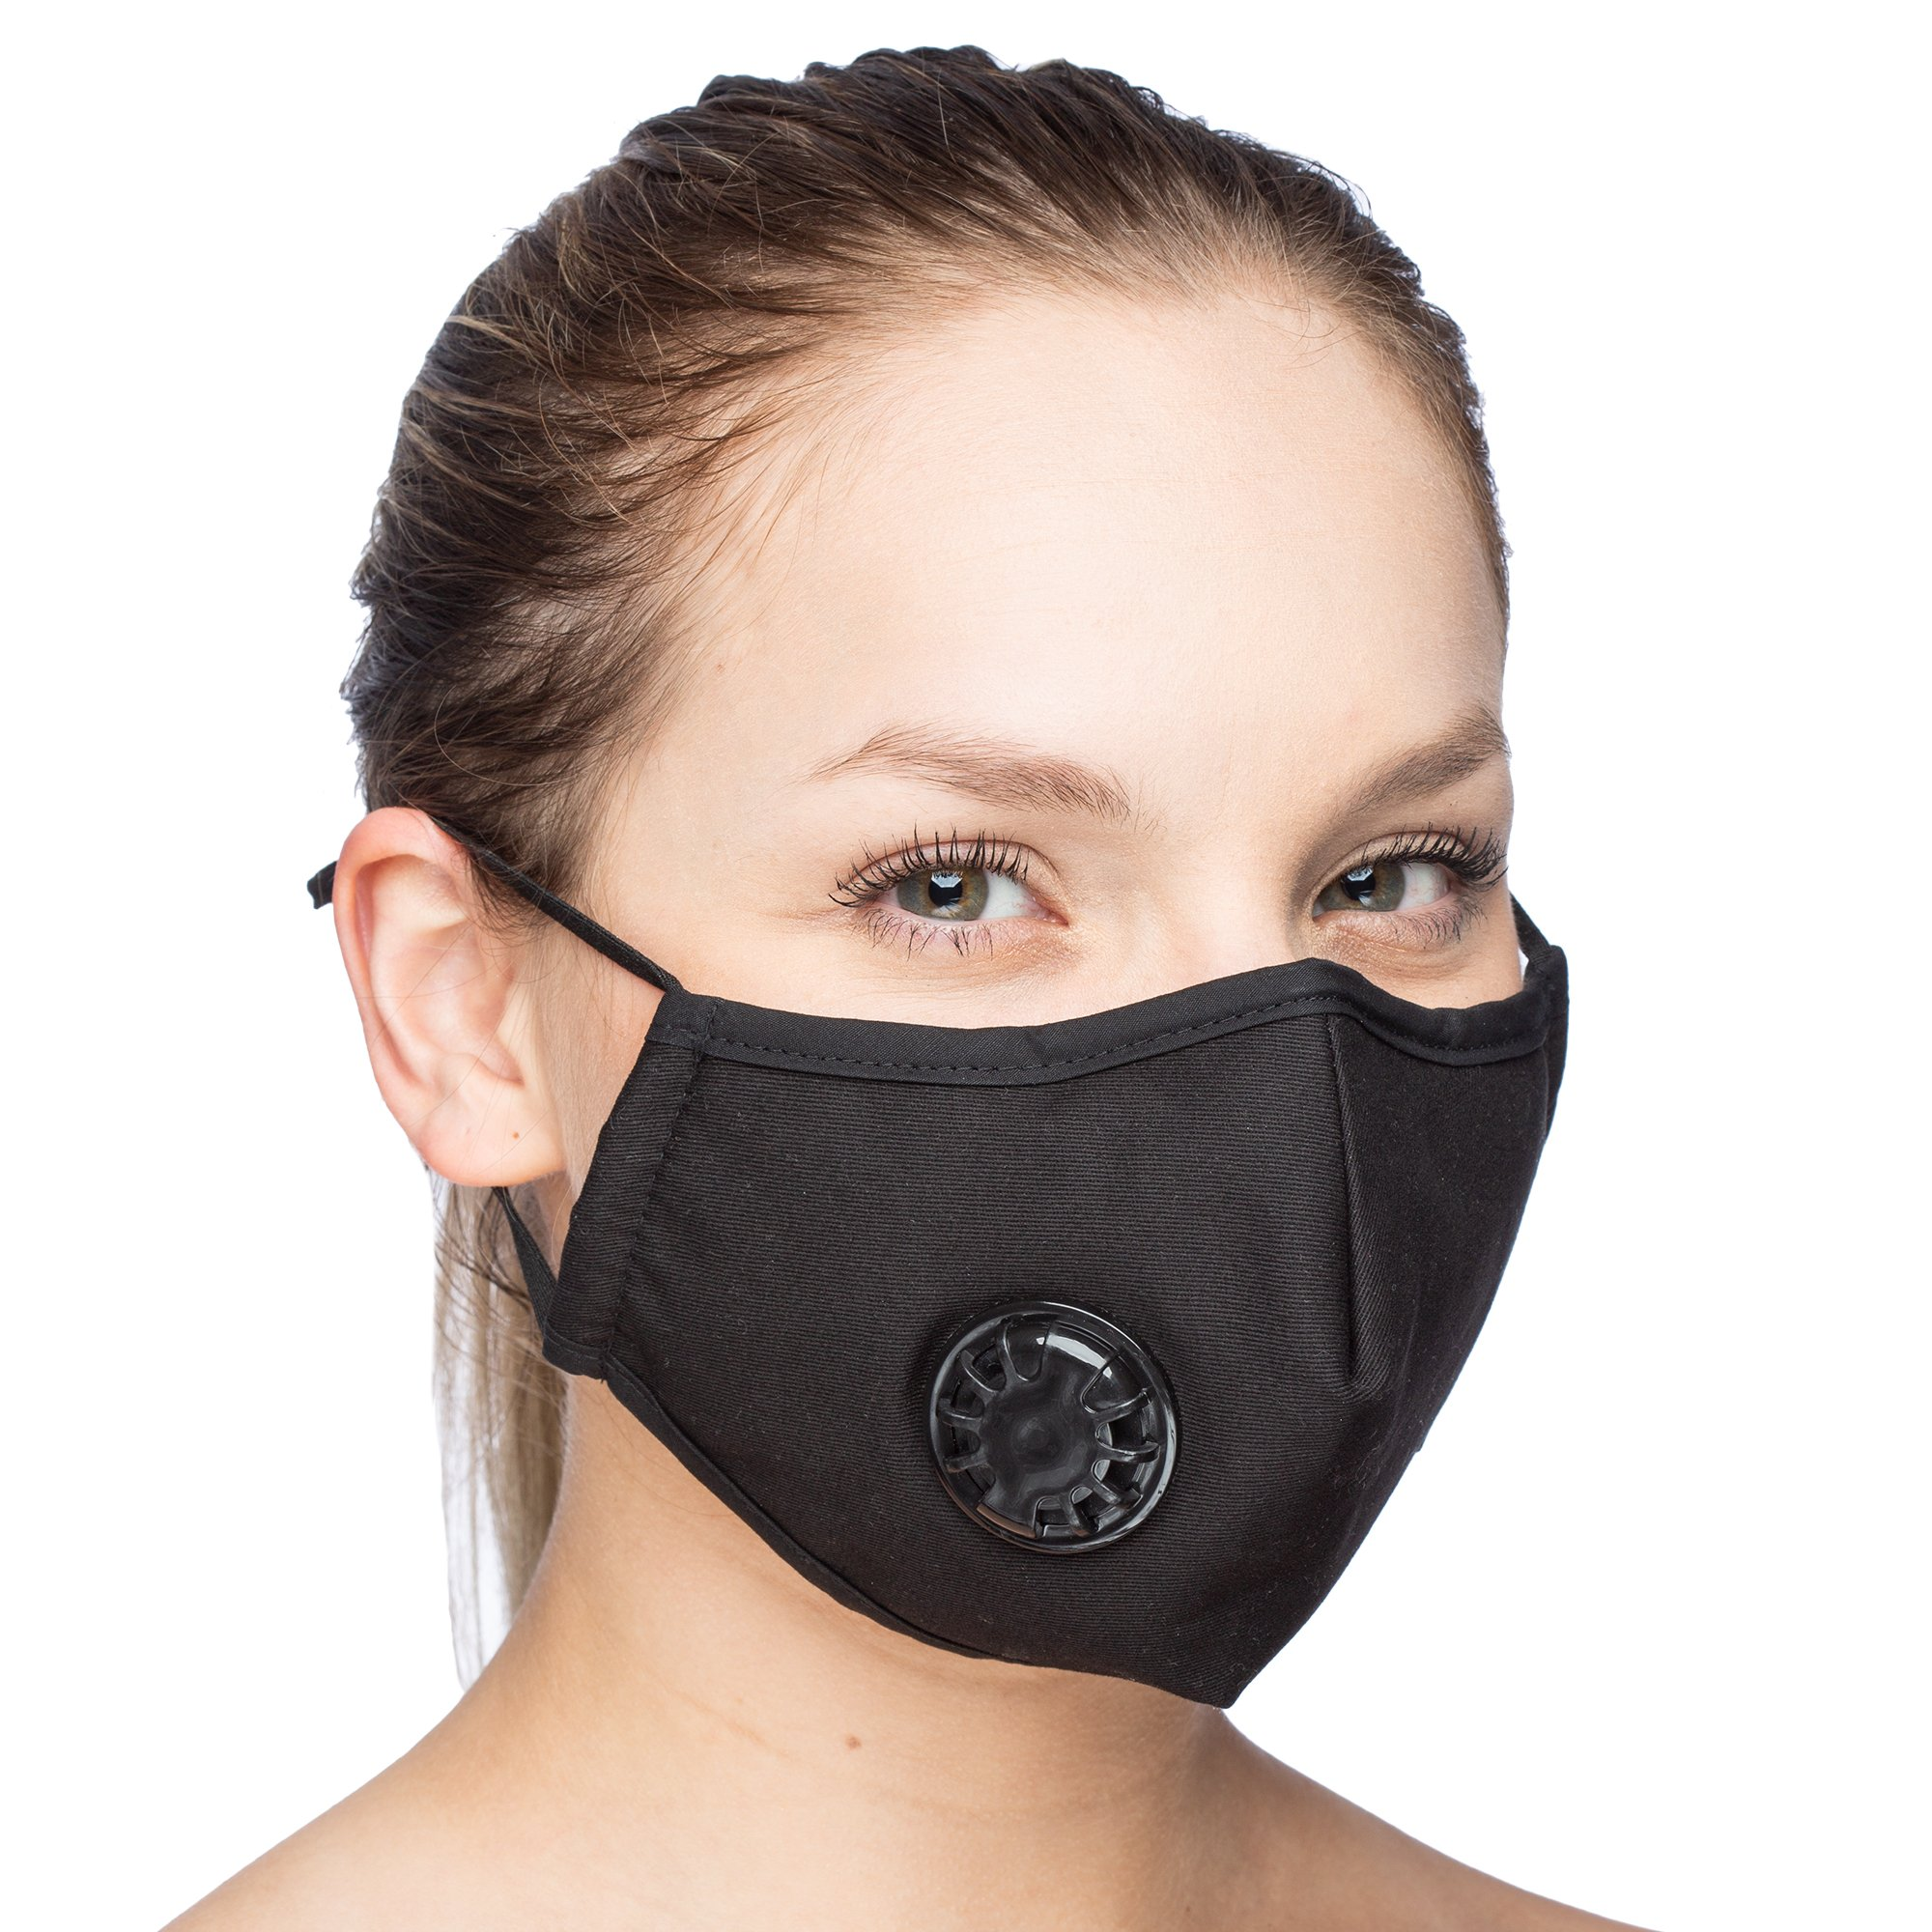 Debrief Me Dust Mask Anti Pollution Breathable Respirator Mask (1 Mask + 6 Filters) Military N99 Flu Mask Carbon Activated Filtration - Reusable Washable Comfy Cotton Adjustable (Black) by Debrief Me